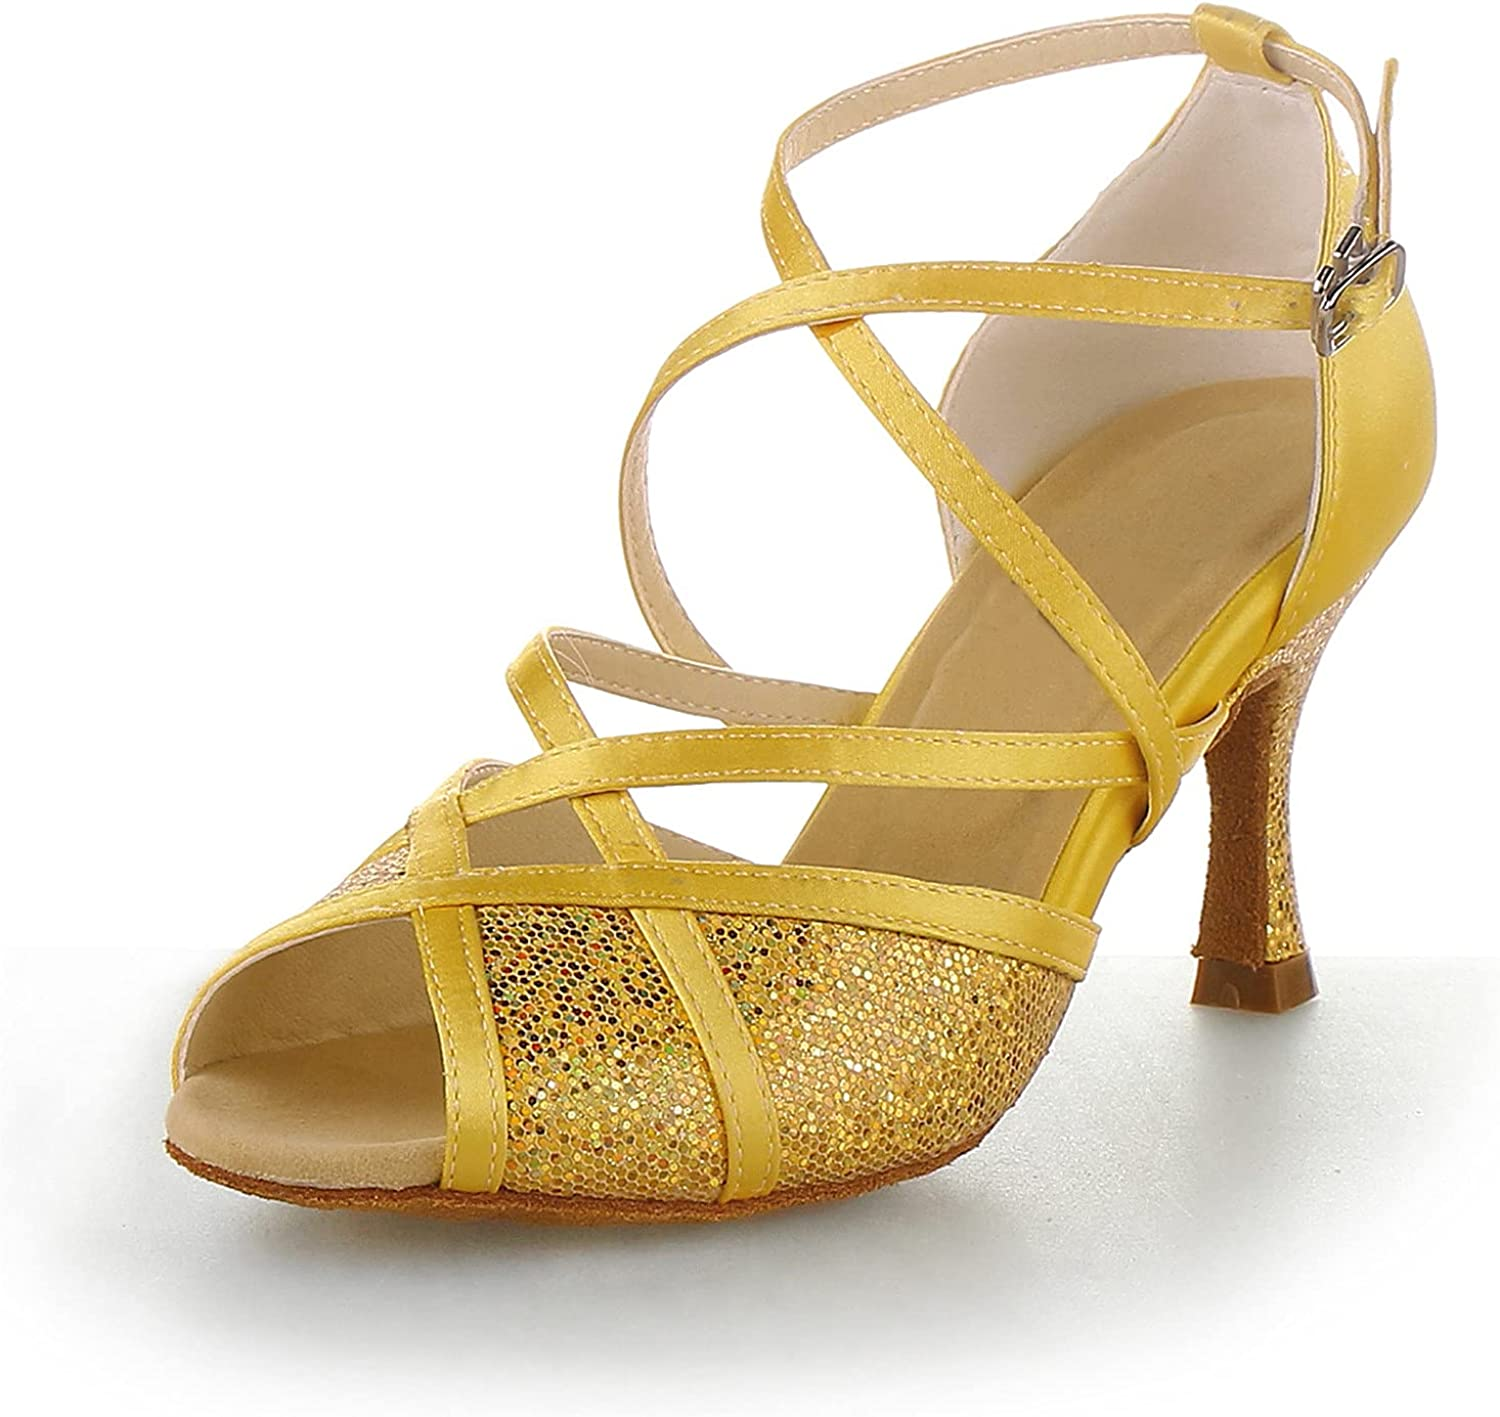 JIAJIA Y20514 Be Shipping included super welcome Women's Satin Sandals Latin Heel Salsa Perf Flared